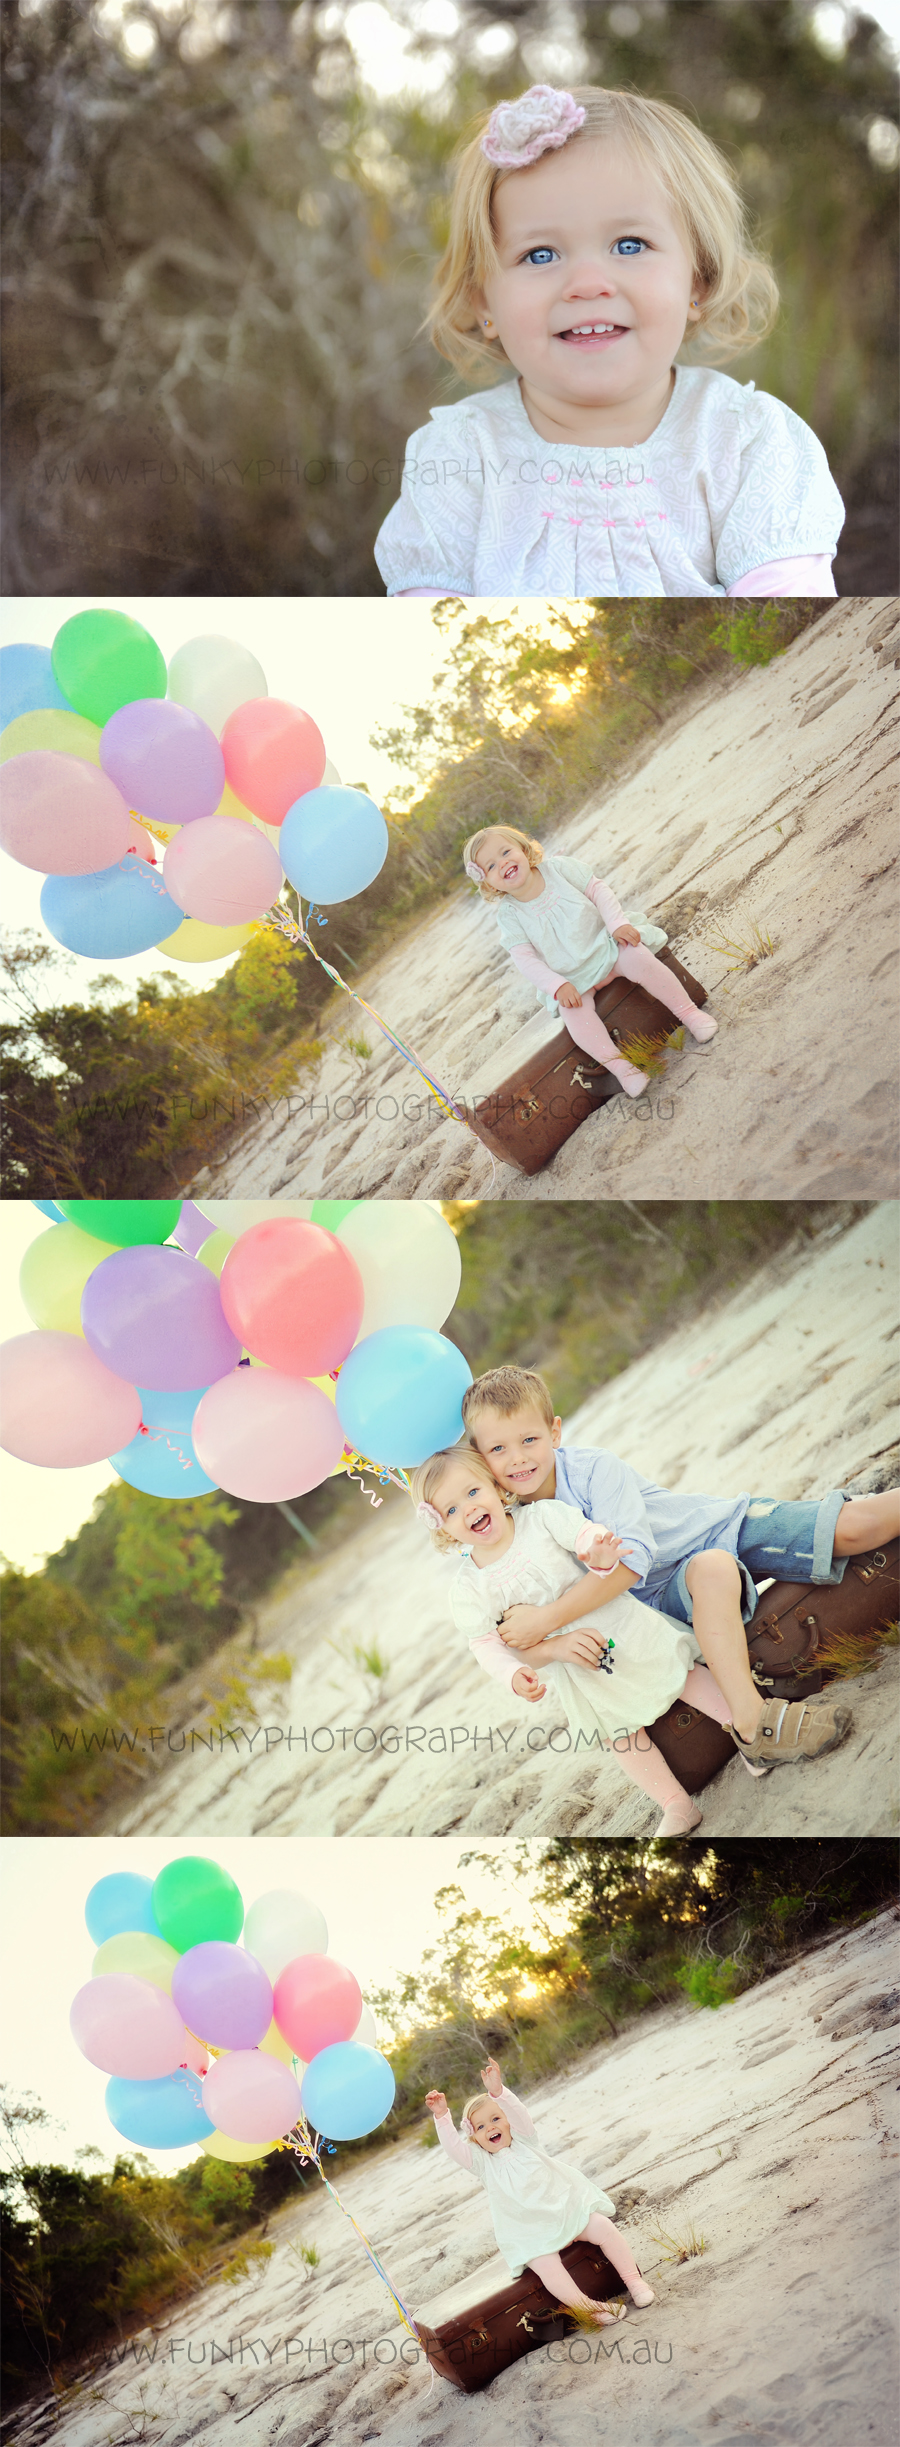 children and balloons vintage style outside